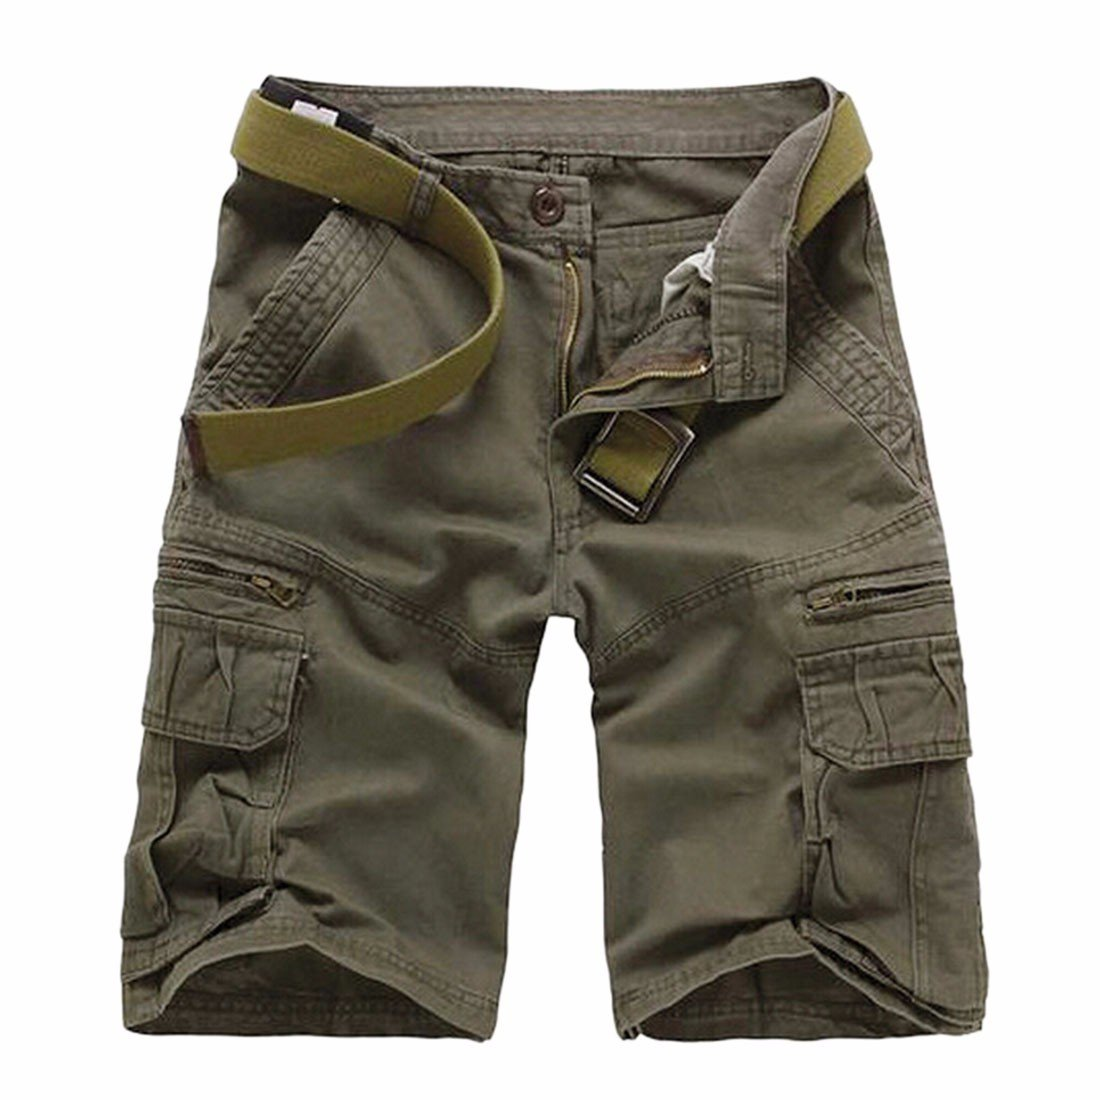 Men Cargo Casual Combat Overall Outdoor Work Short Pants Military Slacks Shorts Winson